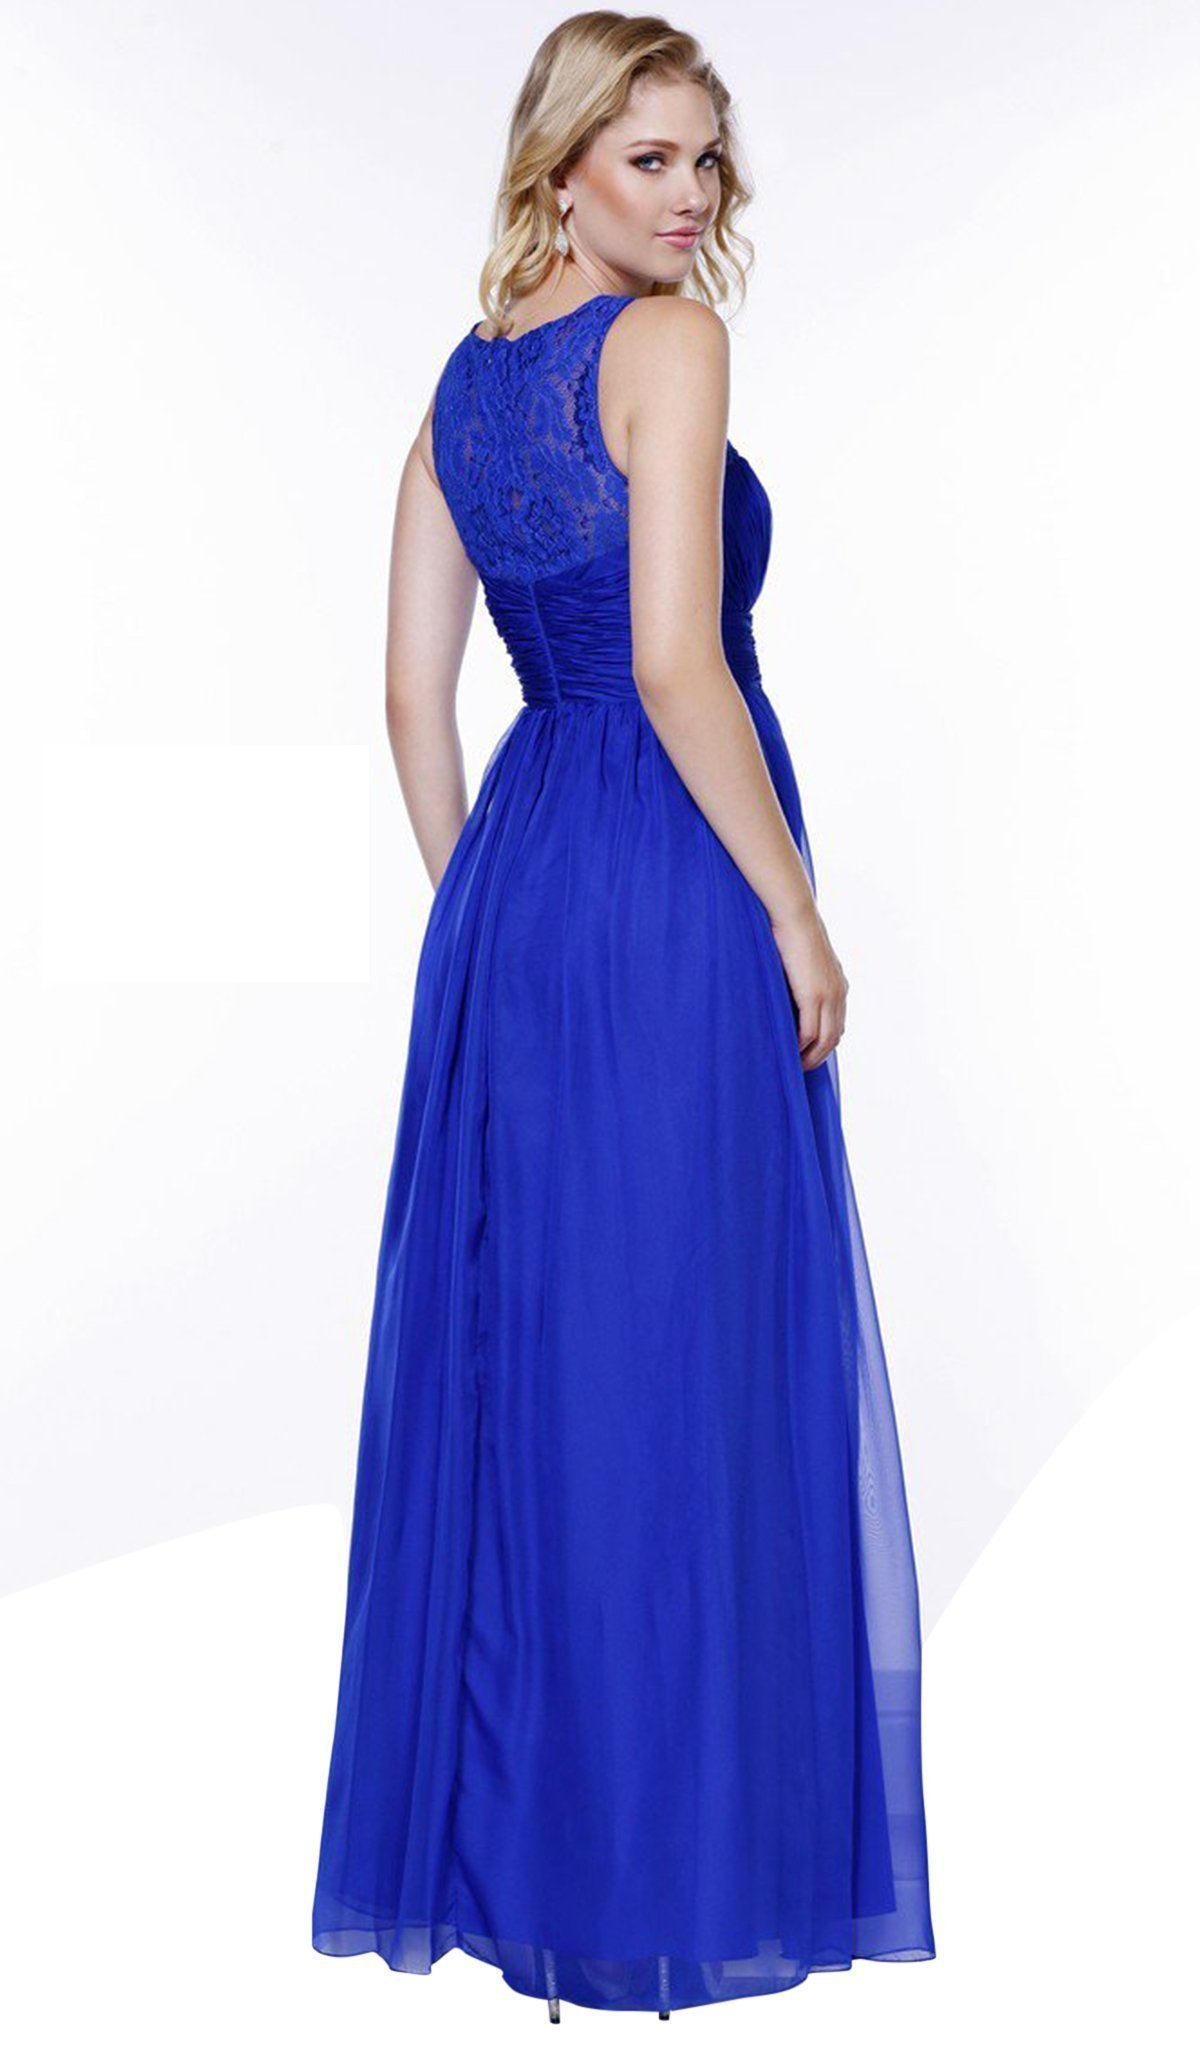 Nox Anabel - Lace and Chiffon A-Line Evening Dress 7126SC